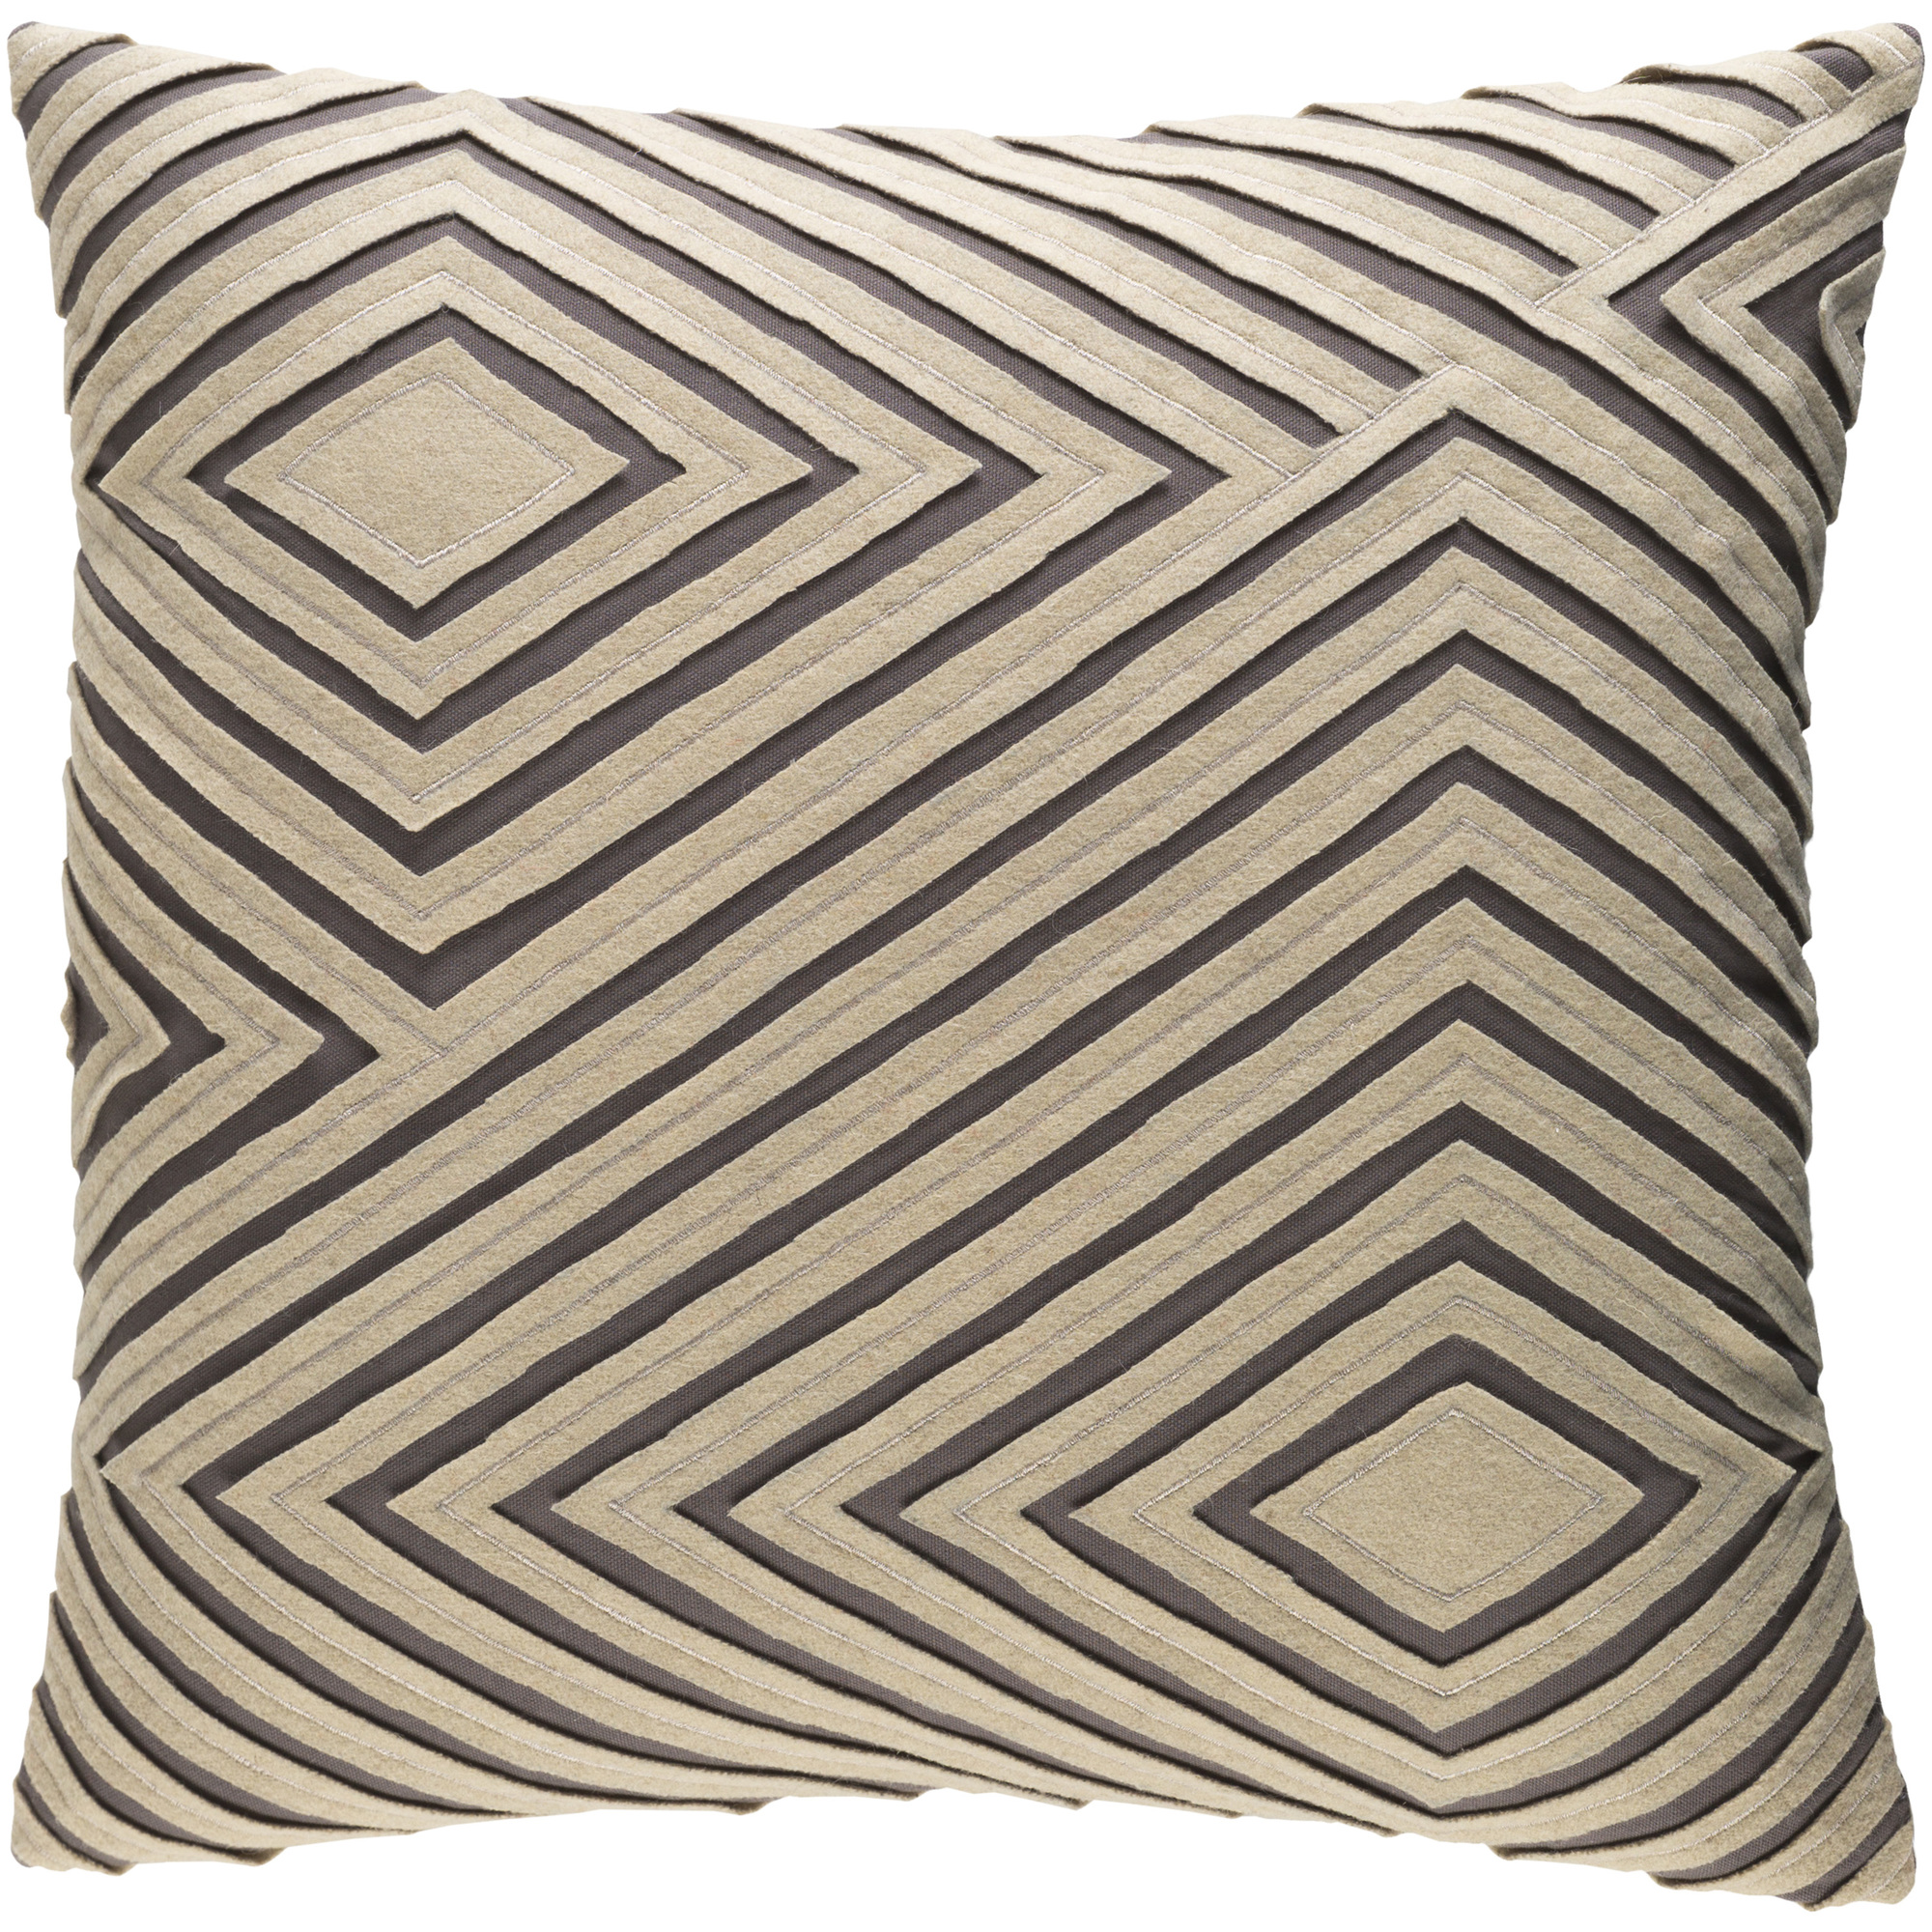 "Art of Knot Bourlet 18"" x 18"" Pillow Cover"